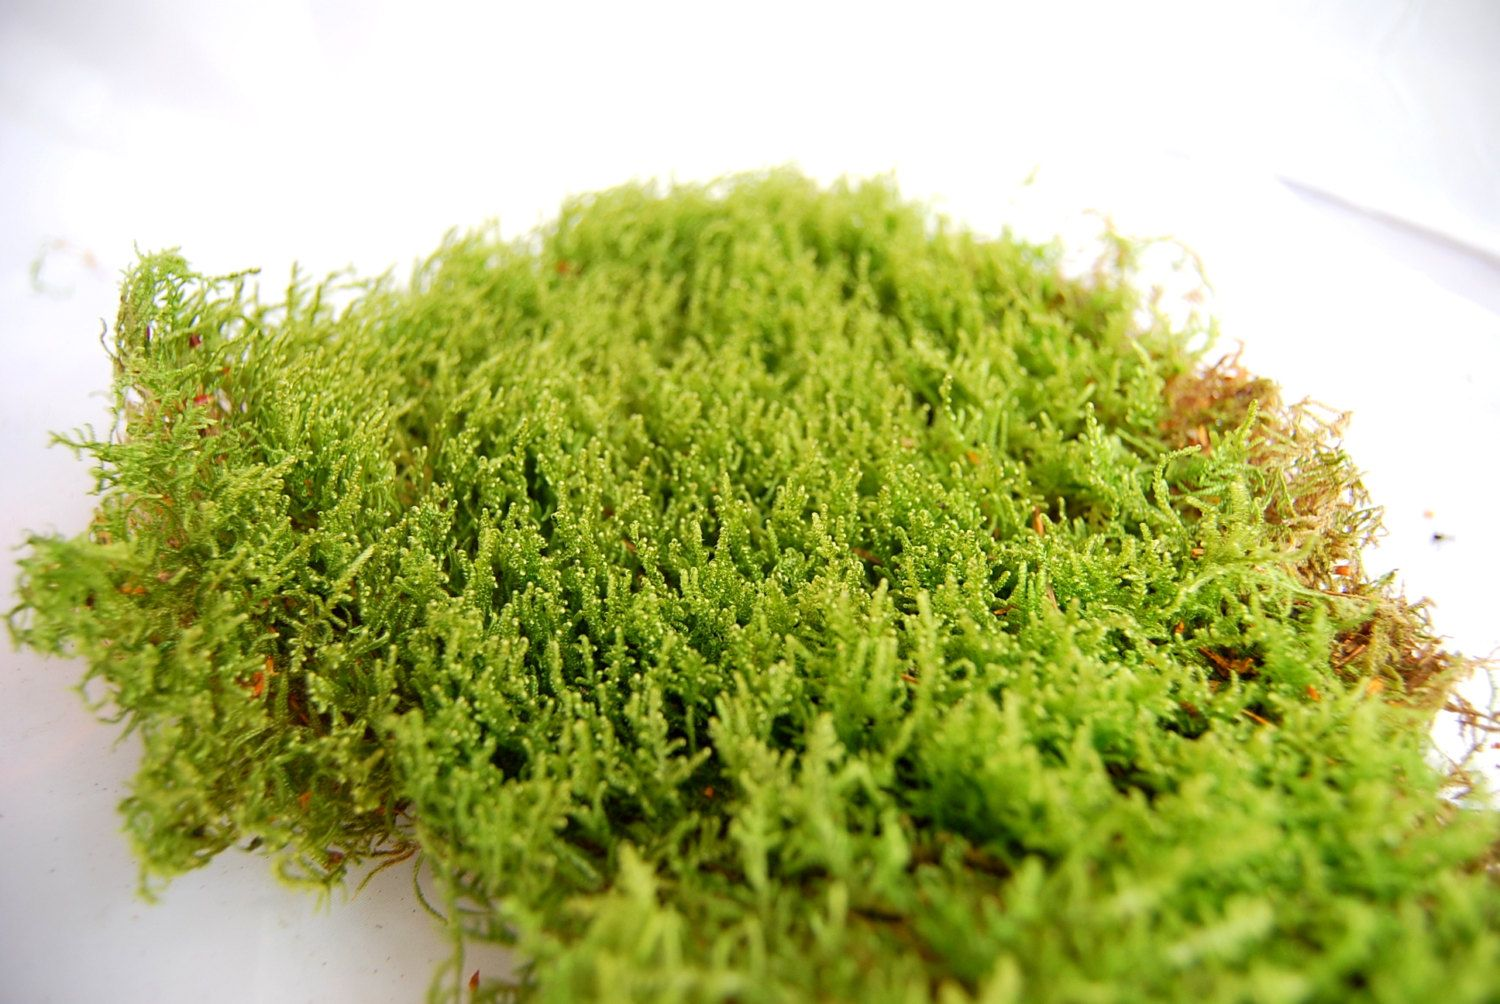 Live carpet moss for terrariumvivariumfrogs orchidsreptiles or